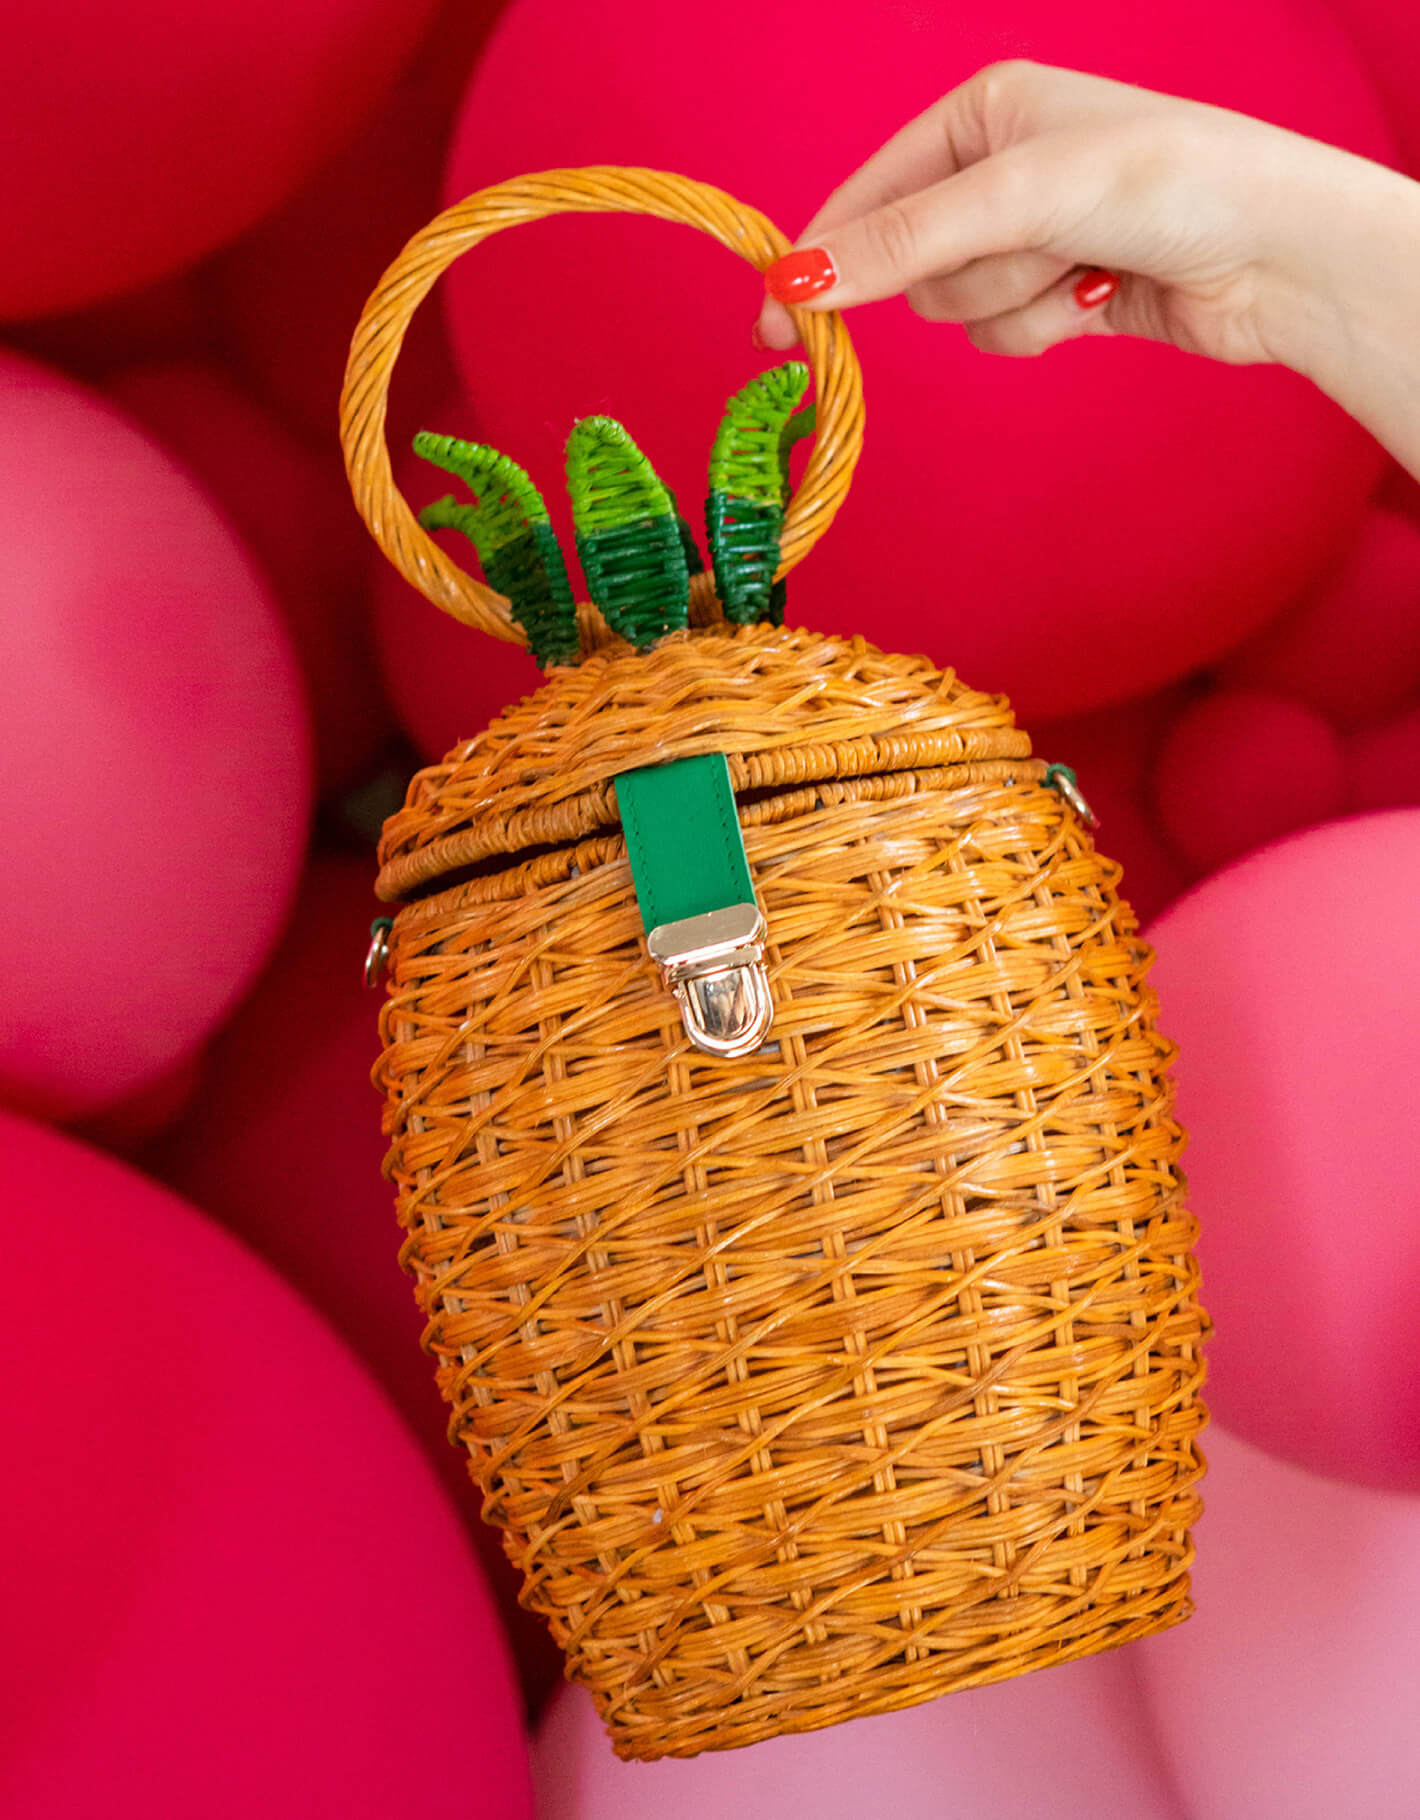 Image of pinapple-shaped wicker handbag with red balloons in the background